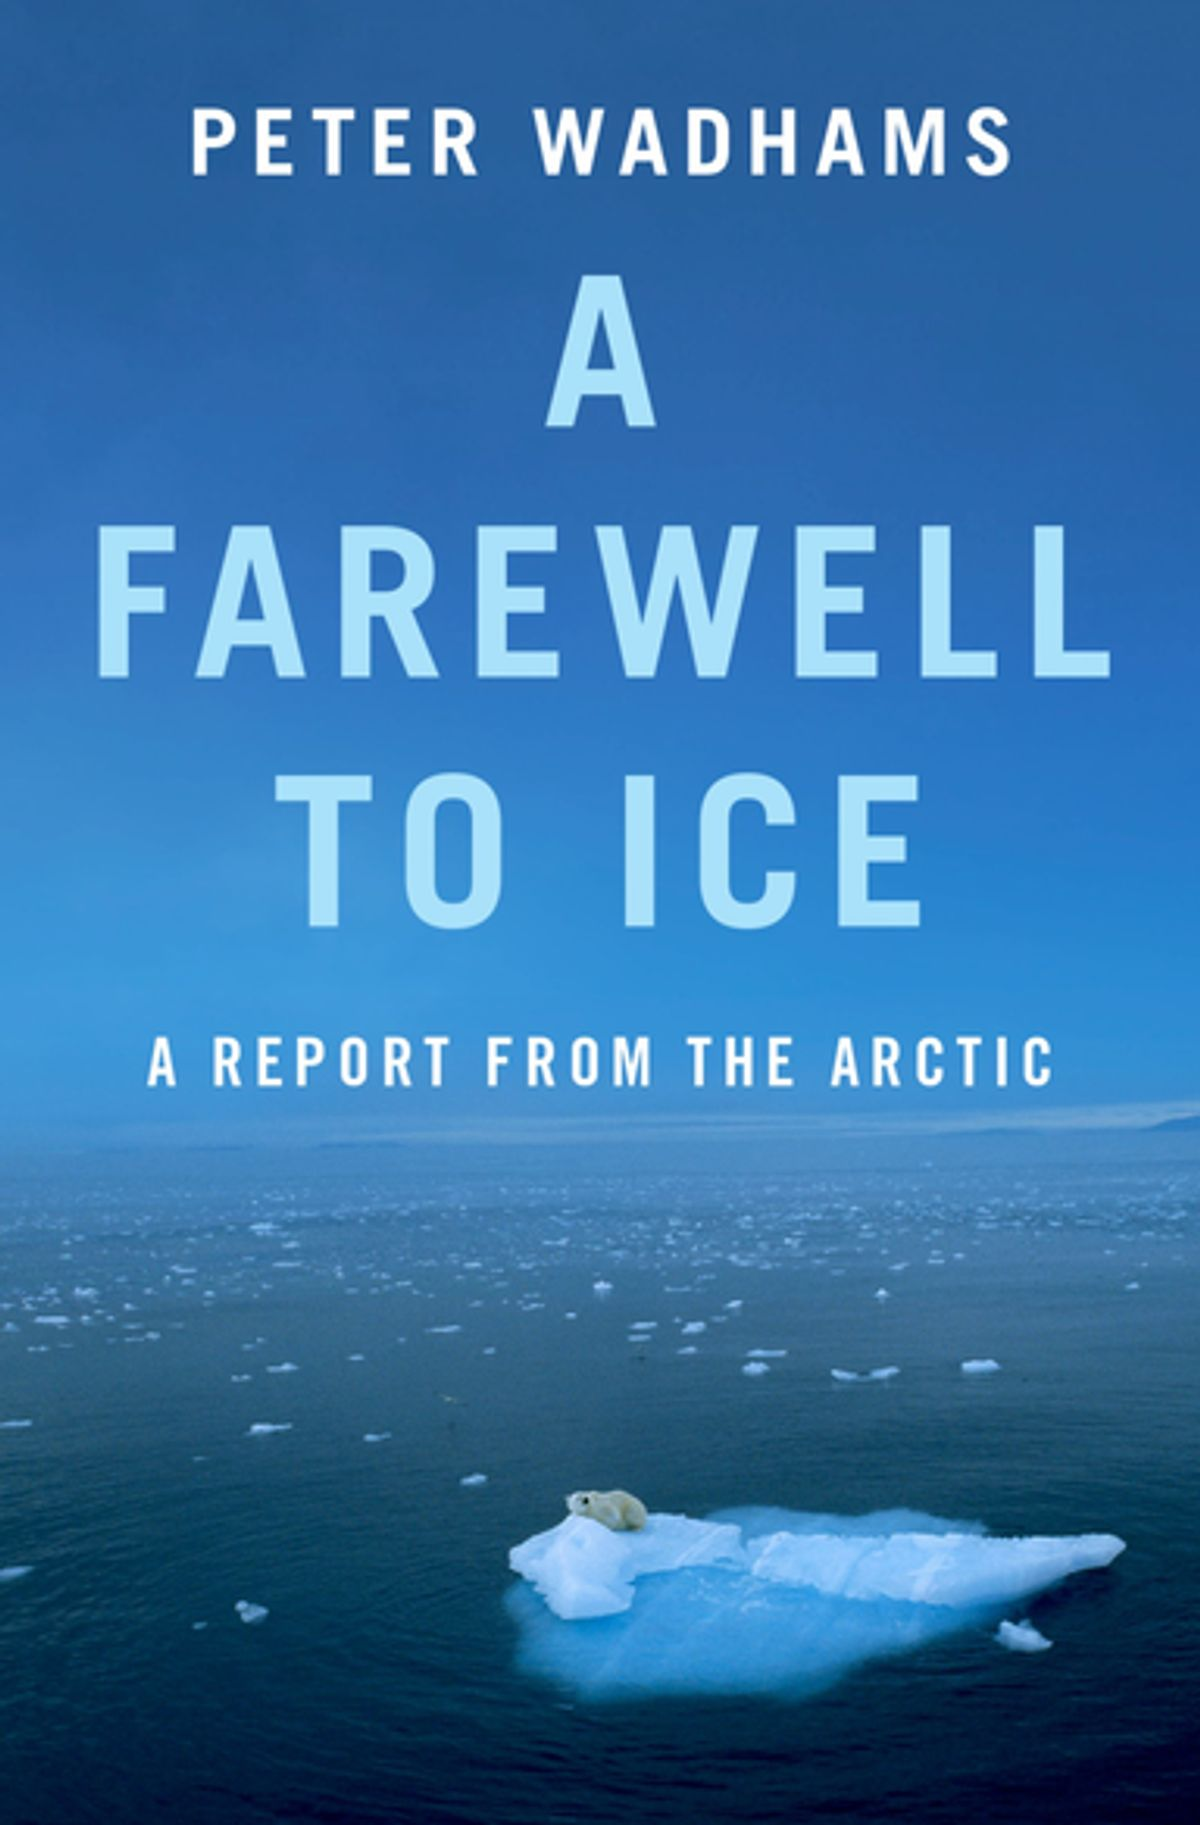 a-farewell-to-ice-1.jpg